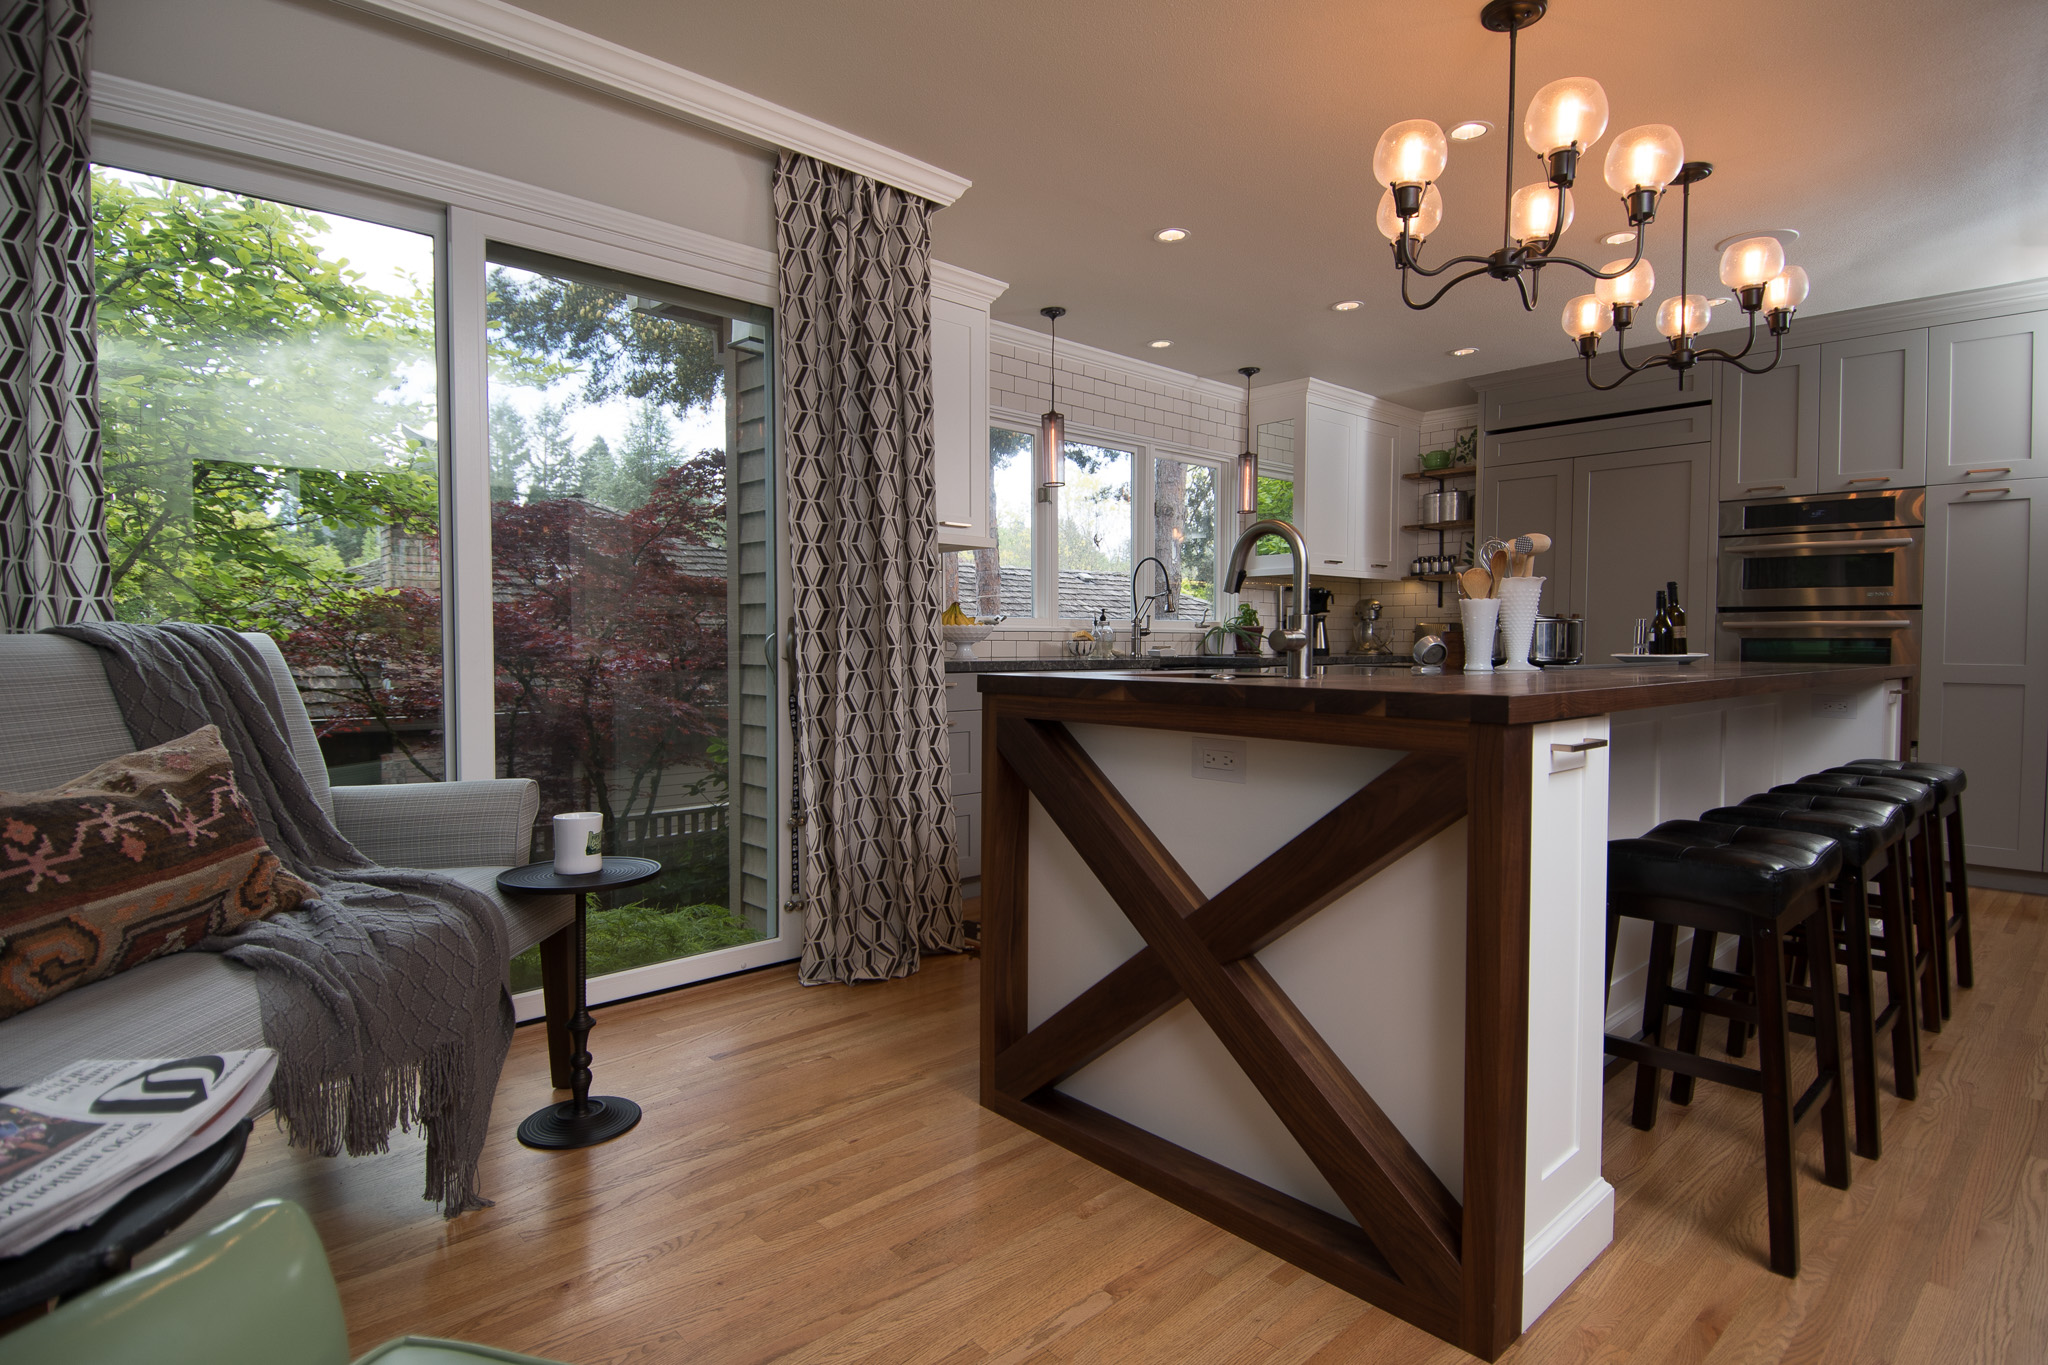 Lord Interior Design - Opening Up The Kitchen-3.jpg